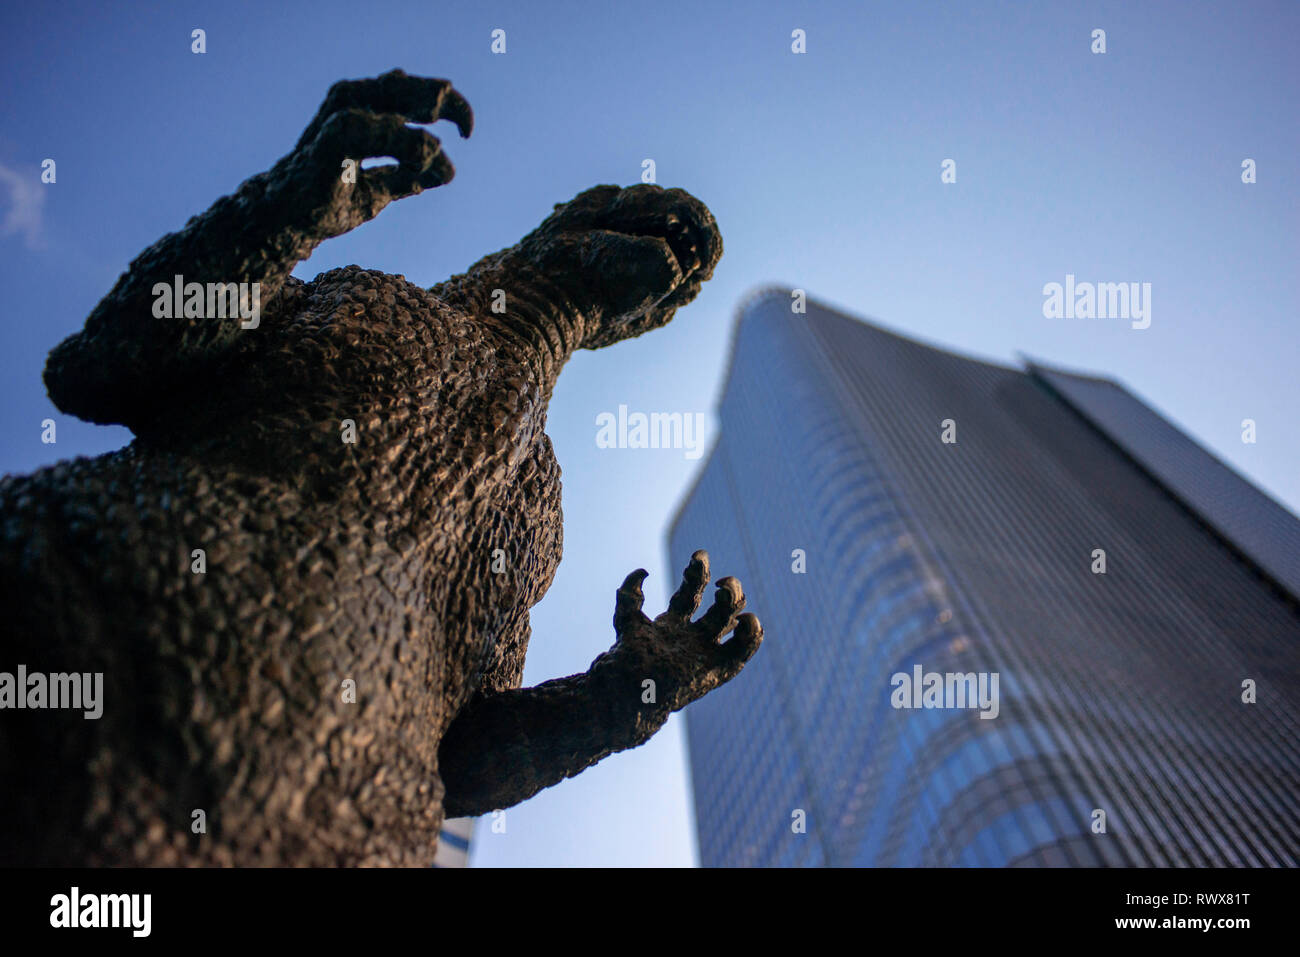 Bronze statue of Godzilla, creature movie star from 1950's, sits on a prominent pedestal in Hibiya cinema district in Tokyo. - Stock Image